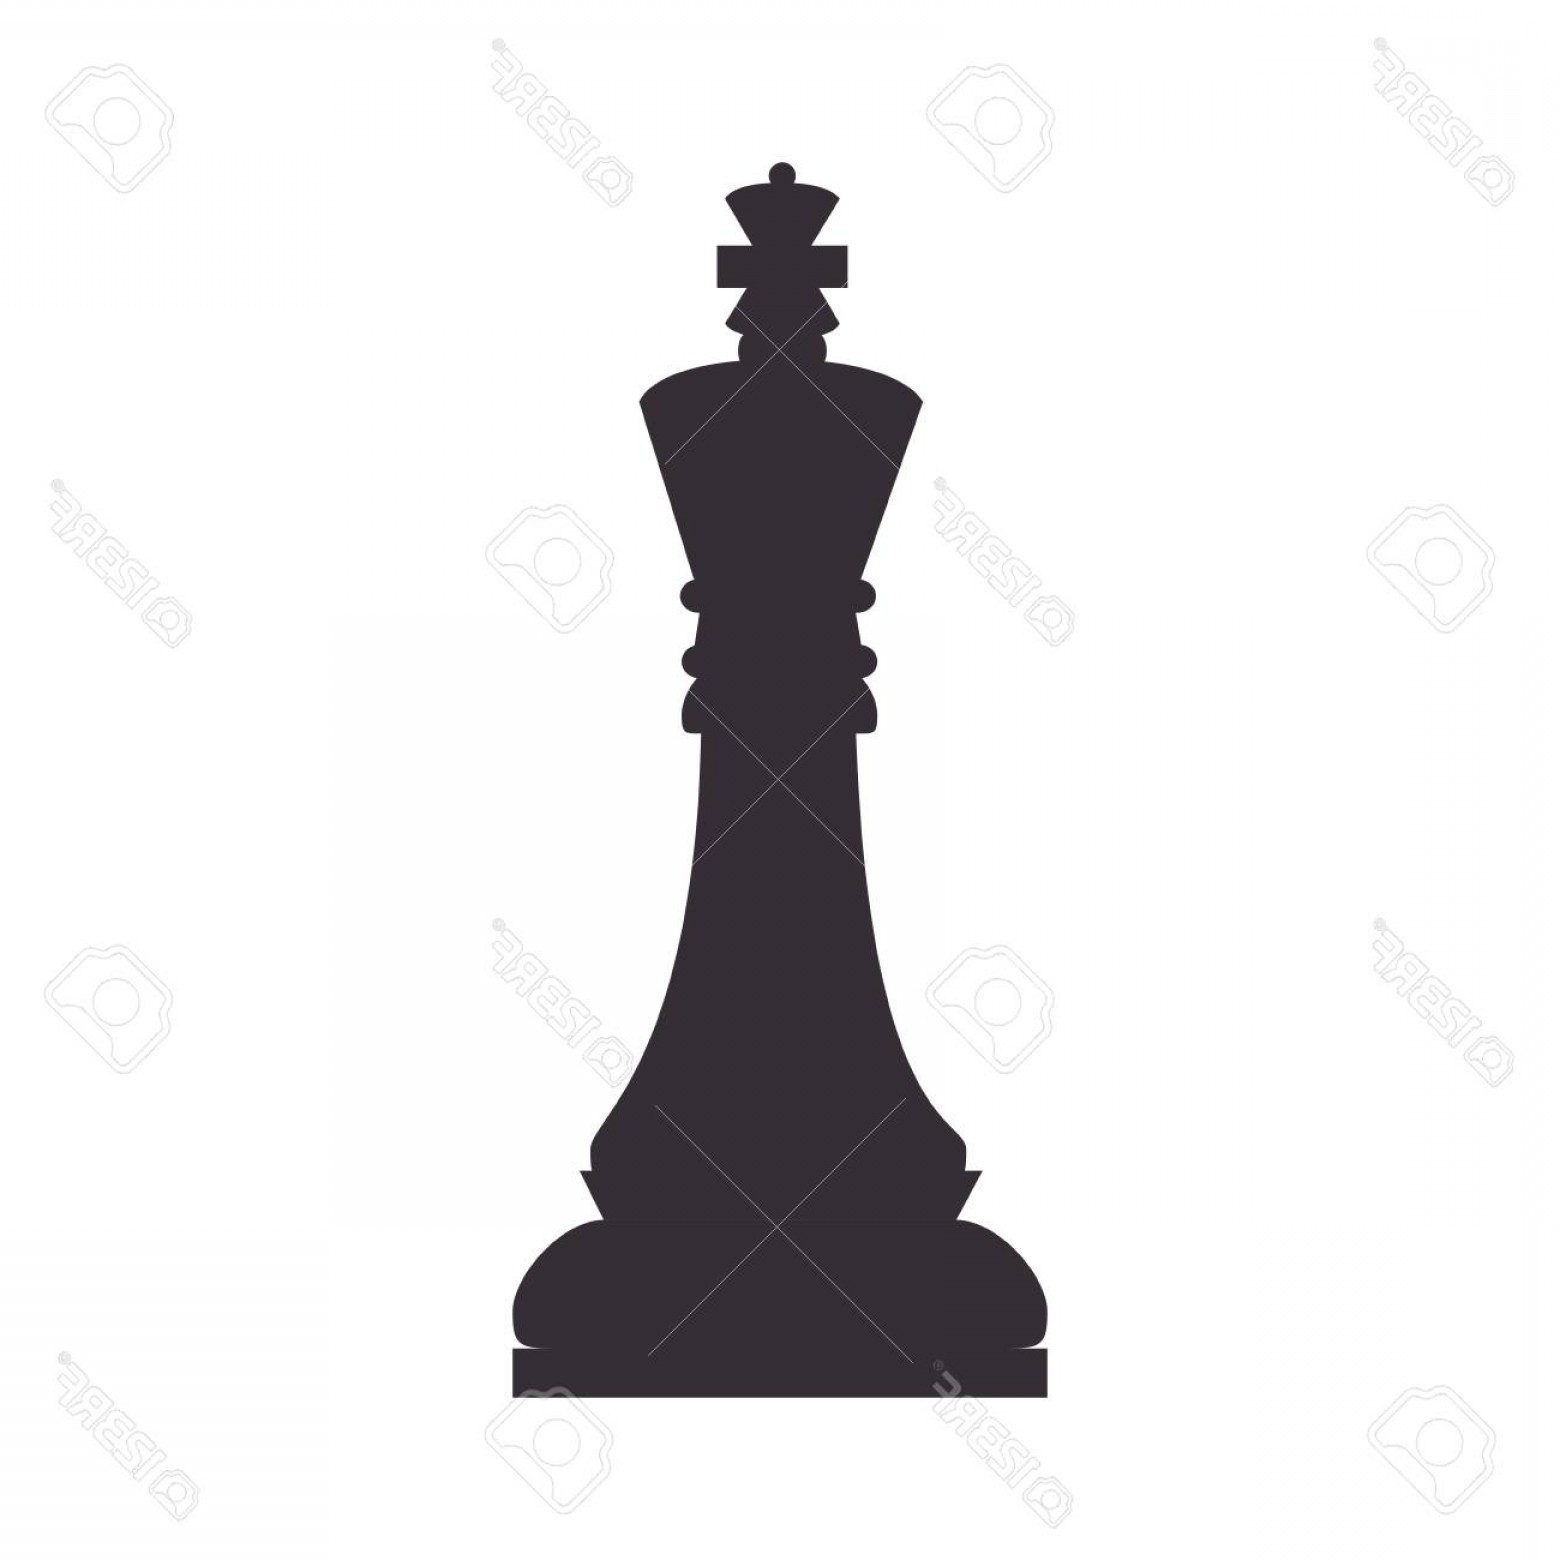 Vector Chess Board: Photostock Vector Chess Piece Game King Chessboard Strategy Silhouette Vector Illustration